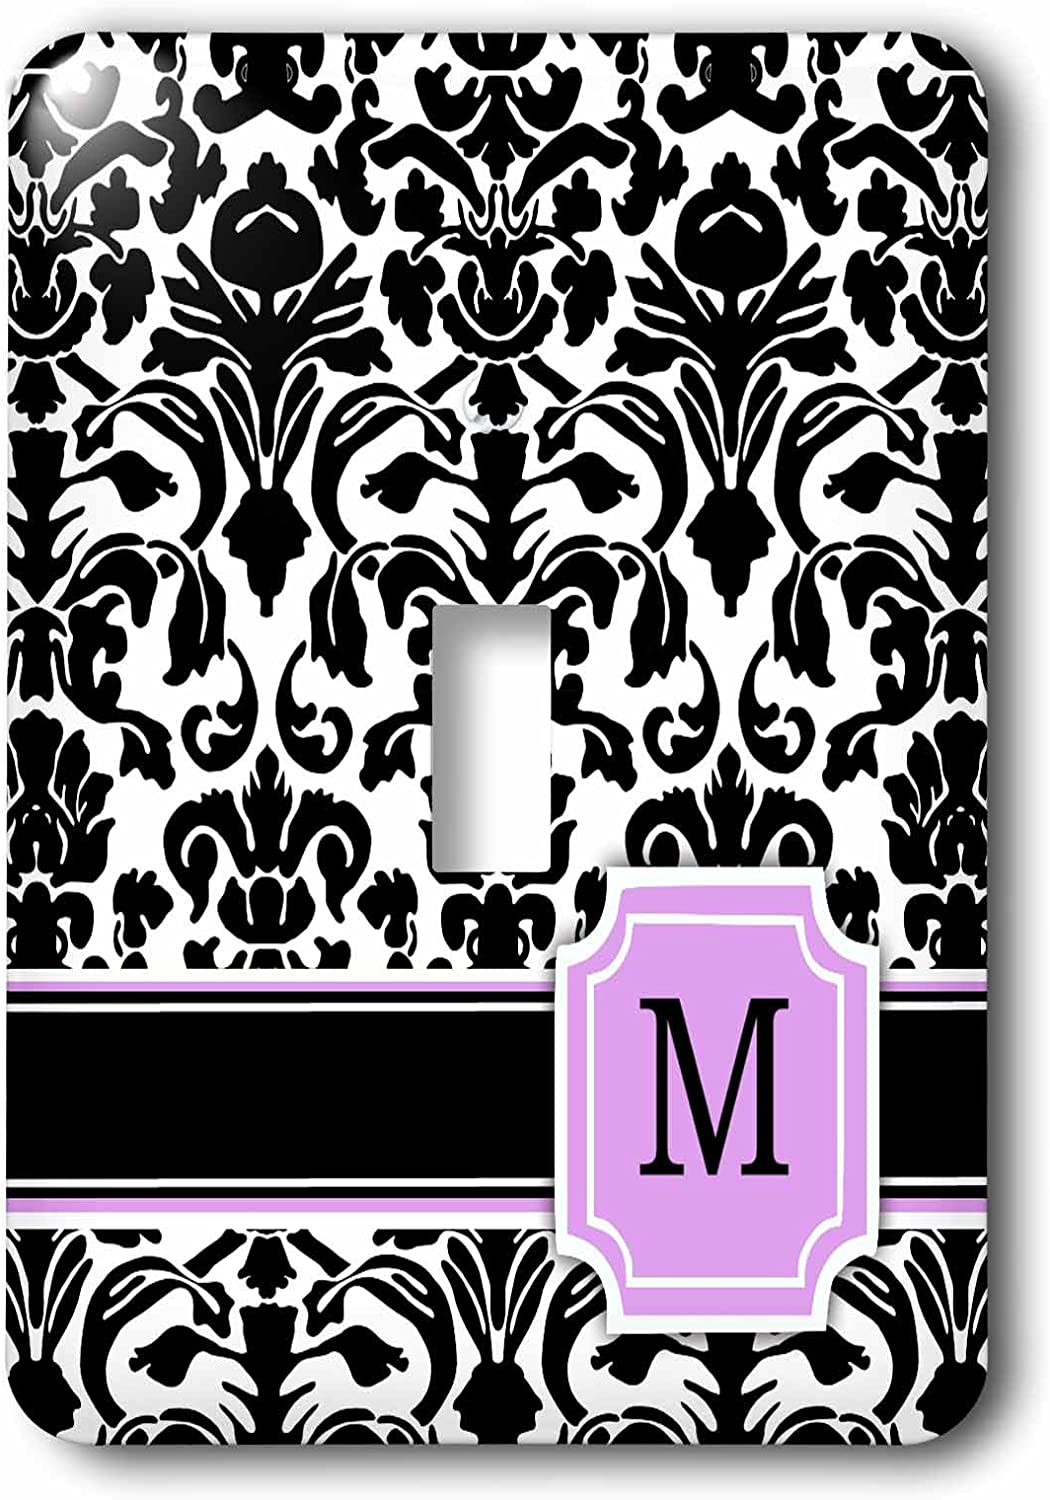 3drose Lsp 154388 1 Personal Initial M Monogrammed Pink Black And White Damask Pattern Girly Stylish Personalized Letter Light Switch Cover Wall Plates Amazon Com